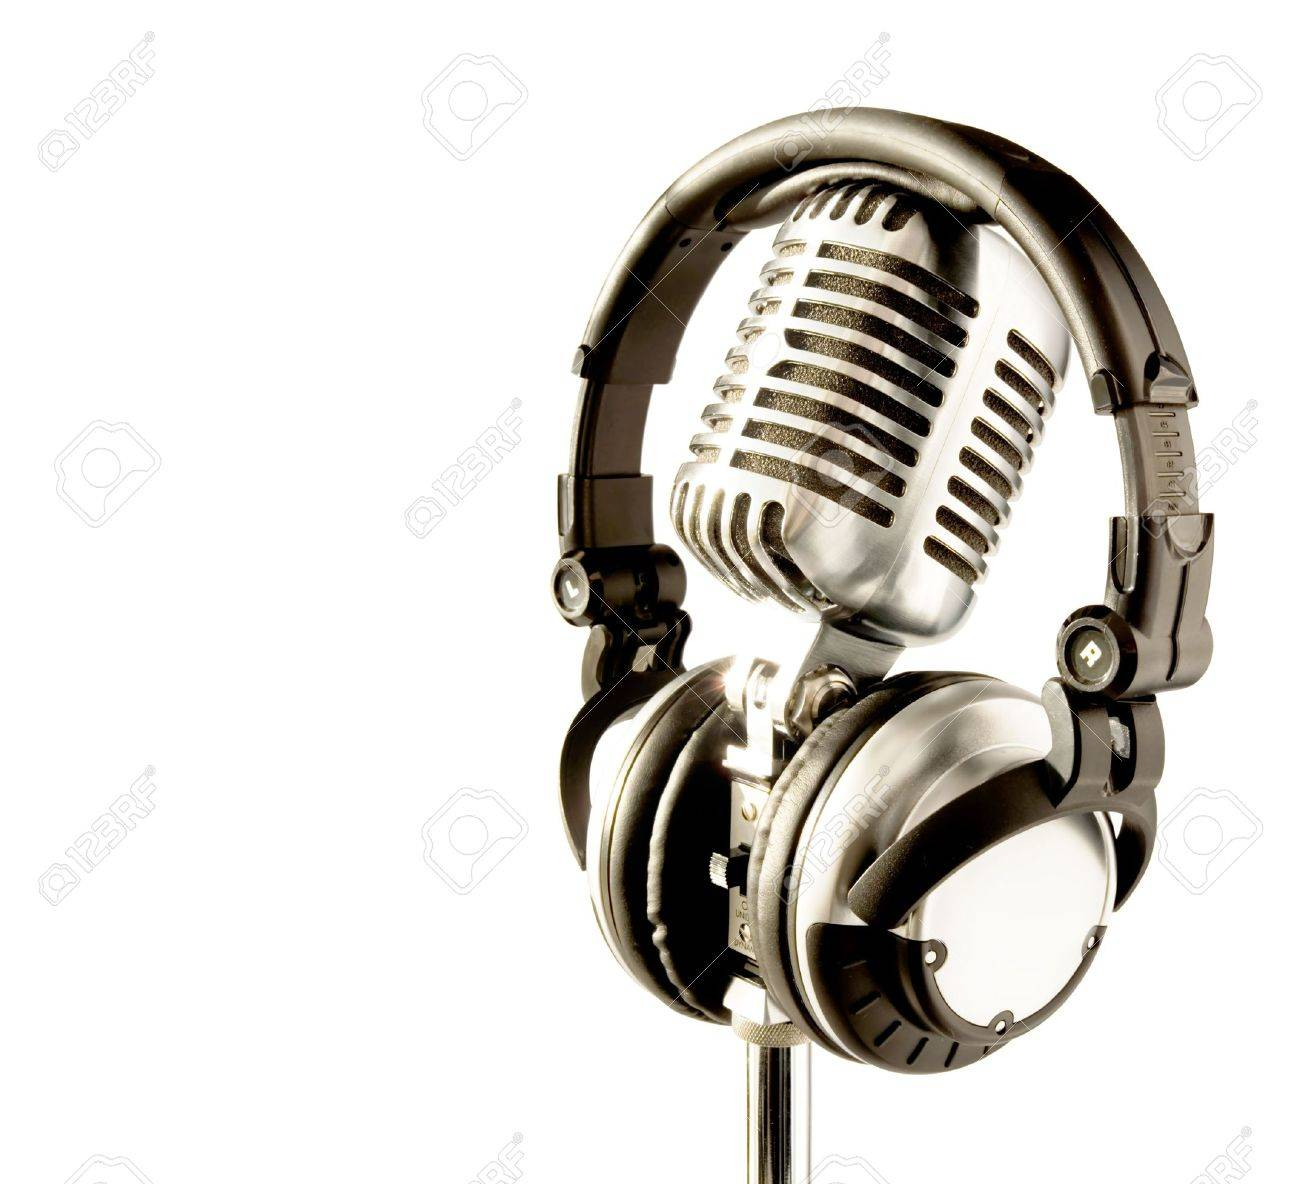 Professional 'Retro' Microphone & DJ Headphones (with clipping path for easy background removing if needed) Stock Photo - 585694